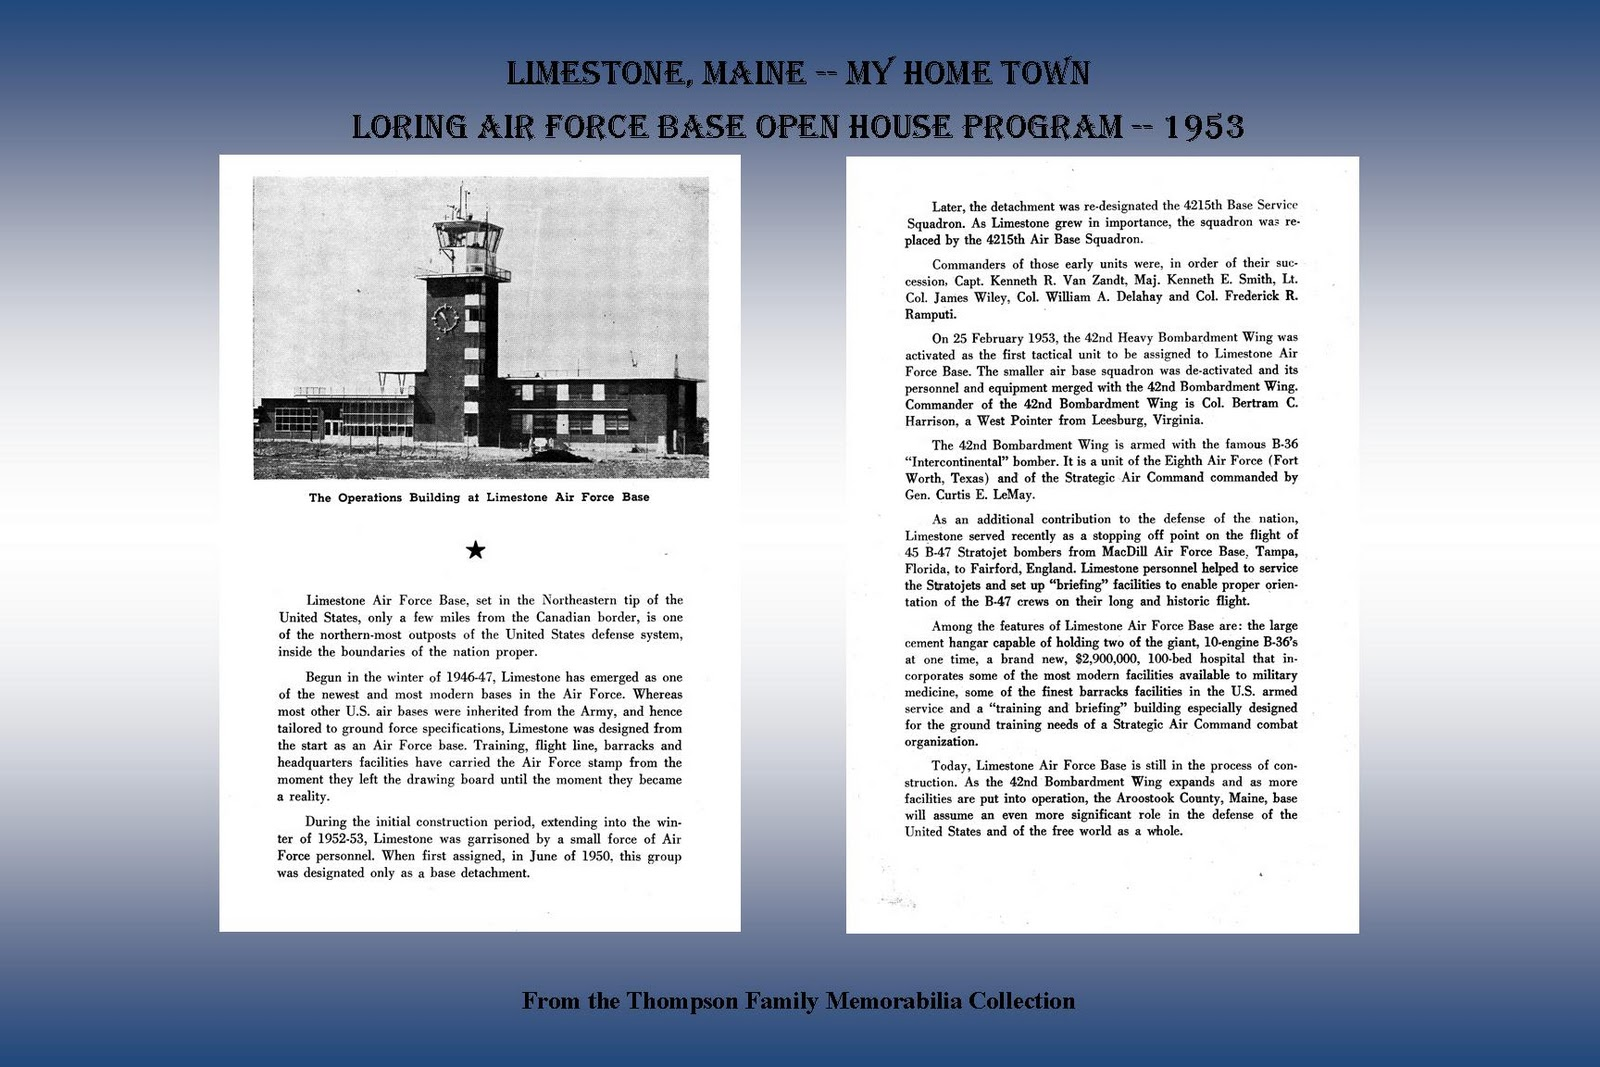 limestone loring afb mature singles Loring international airport is the operational name of the airfield at the former loring air force base in limestone, maine it is currently operated by the loring commerce centre.